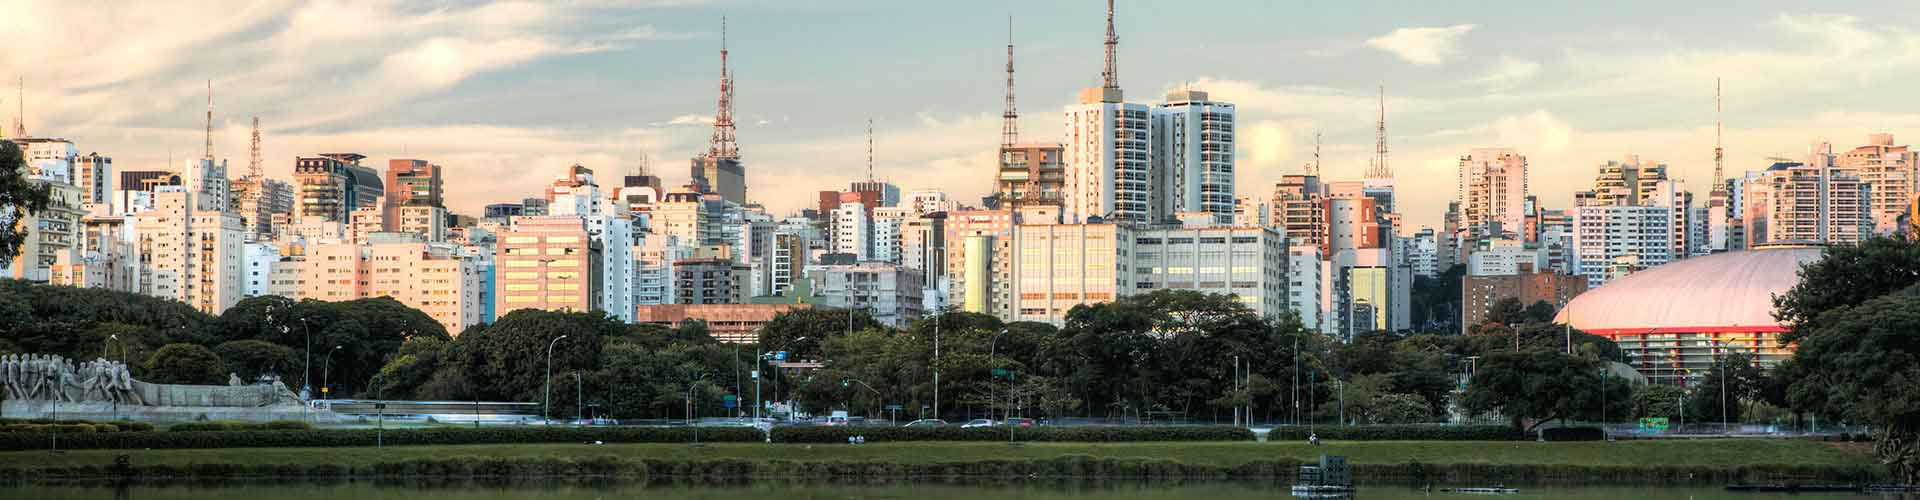 Sao Paulo – Hotels in Sao Paulo. Maps of Sao Paulo, Photos and Reviews for each Hotel in Sao Paulo.